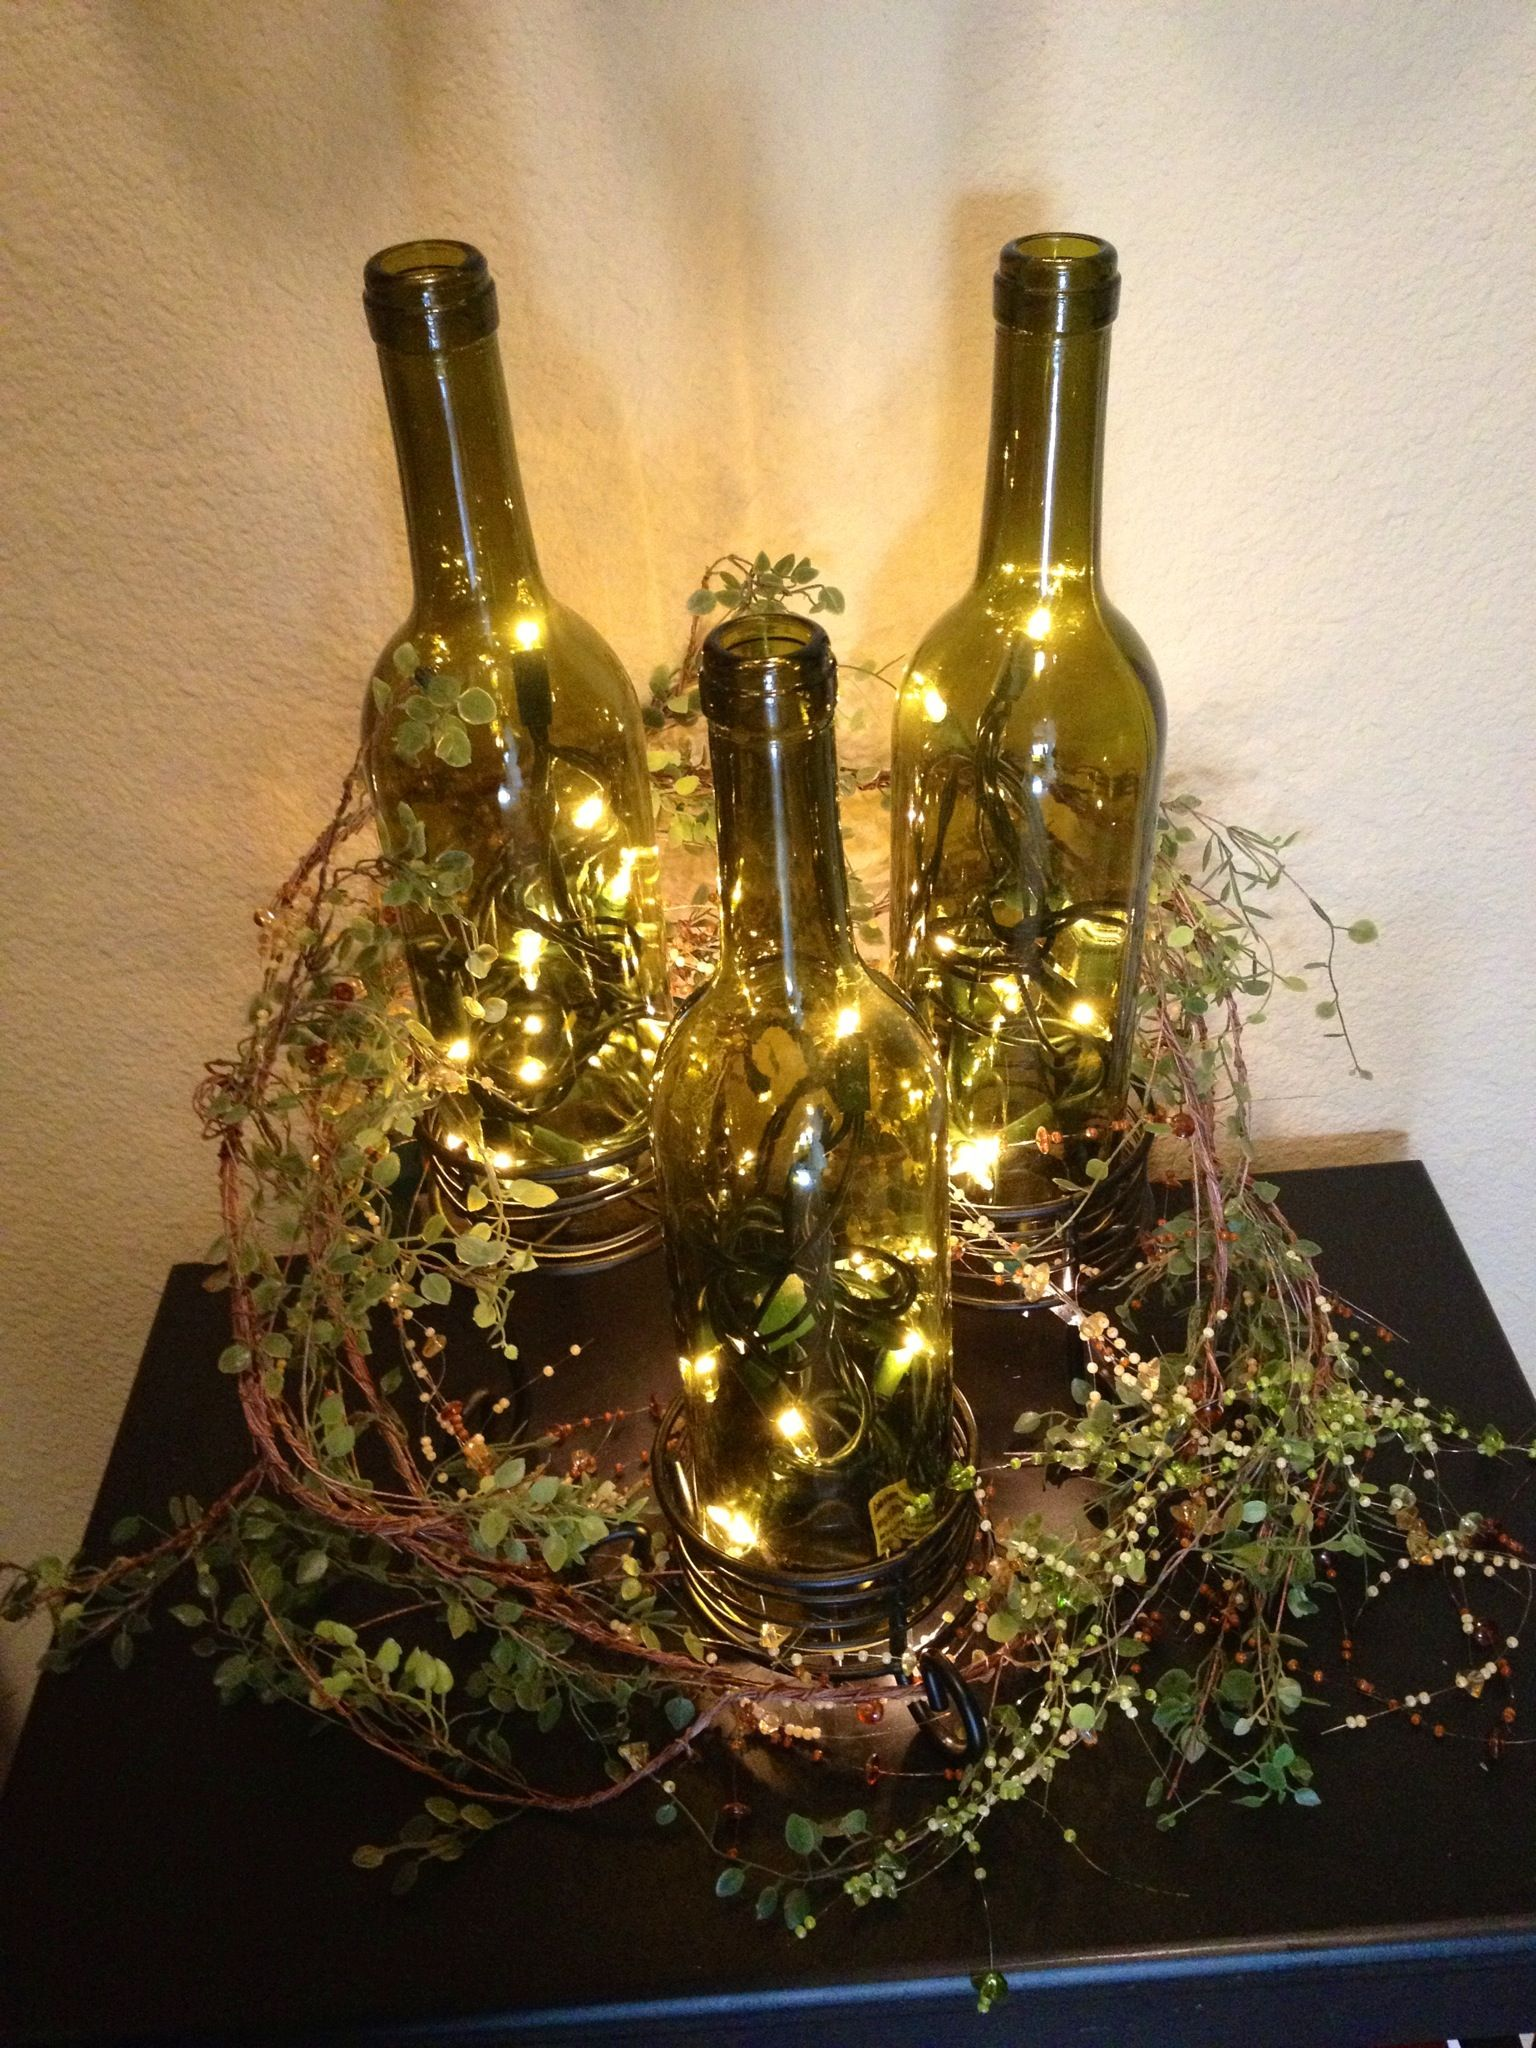 3 wine bottles placed on candle holders of different sizes for Christmas bottle decorations